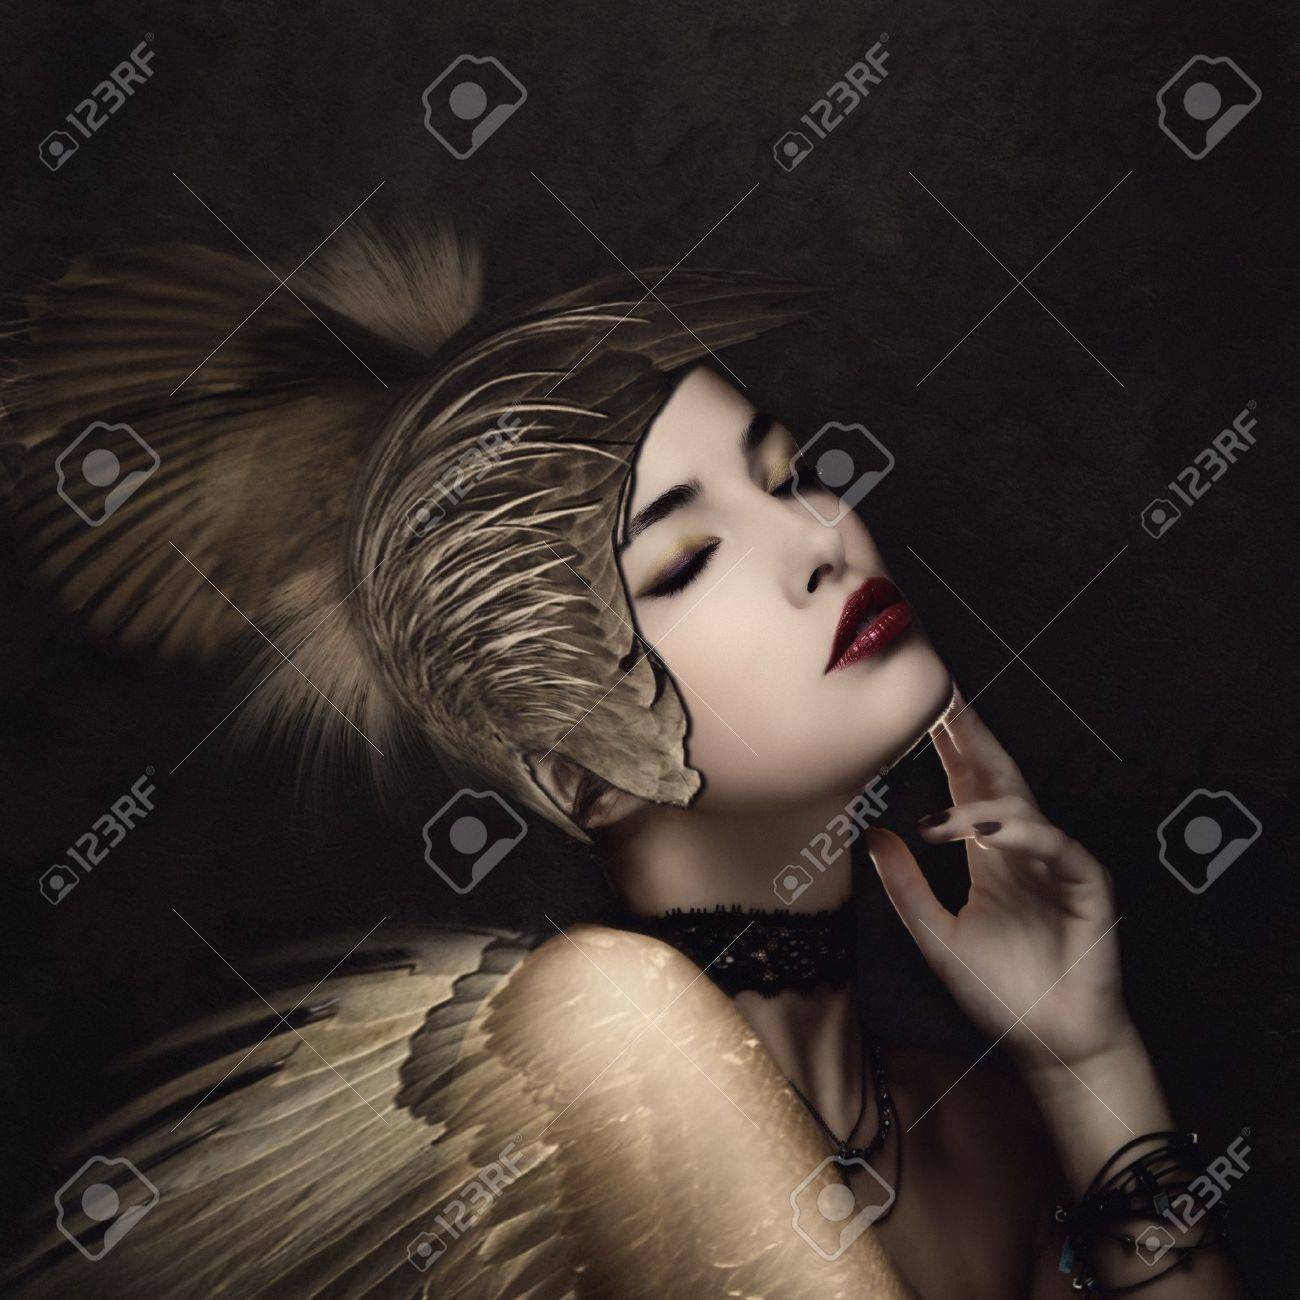 battle angel with feather helmet in calm thinking pose small amount of grain added Standard-Bild - 19150608